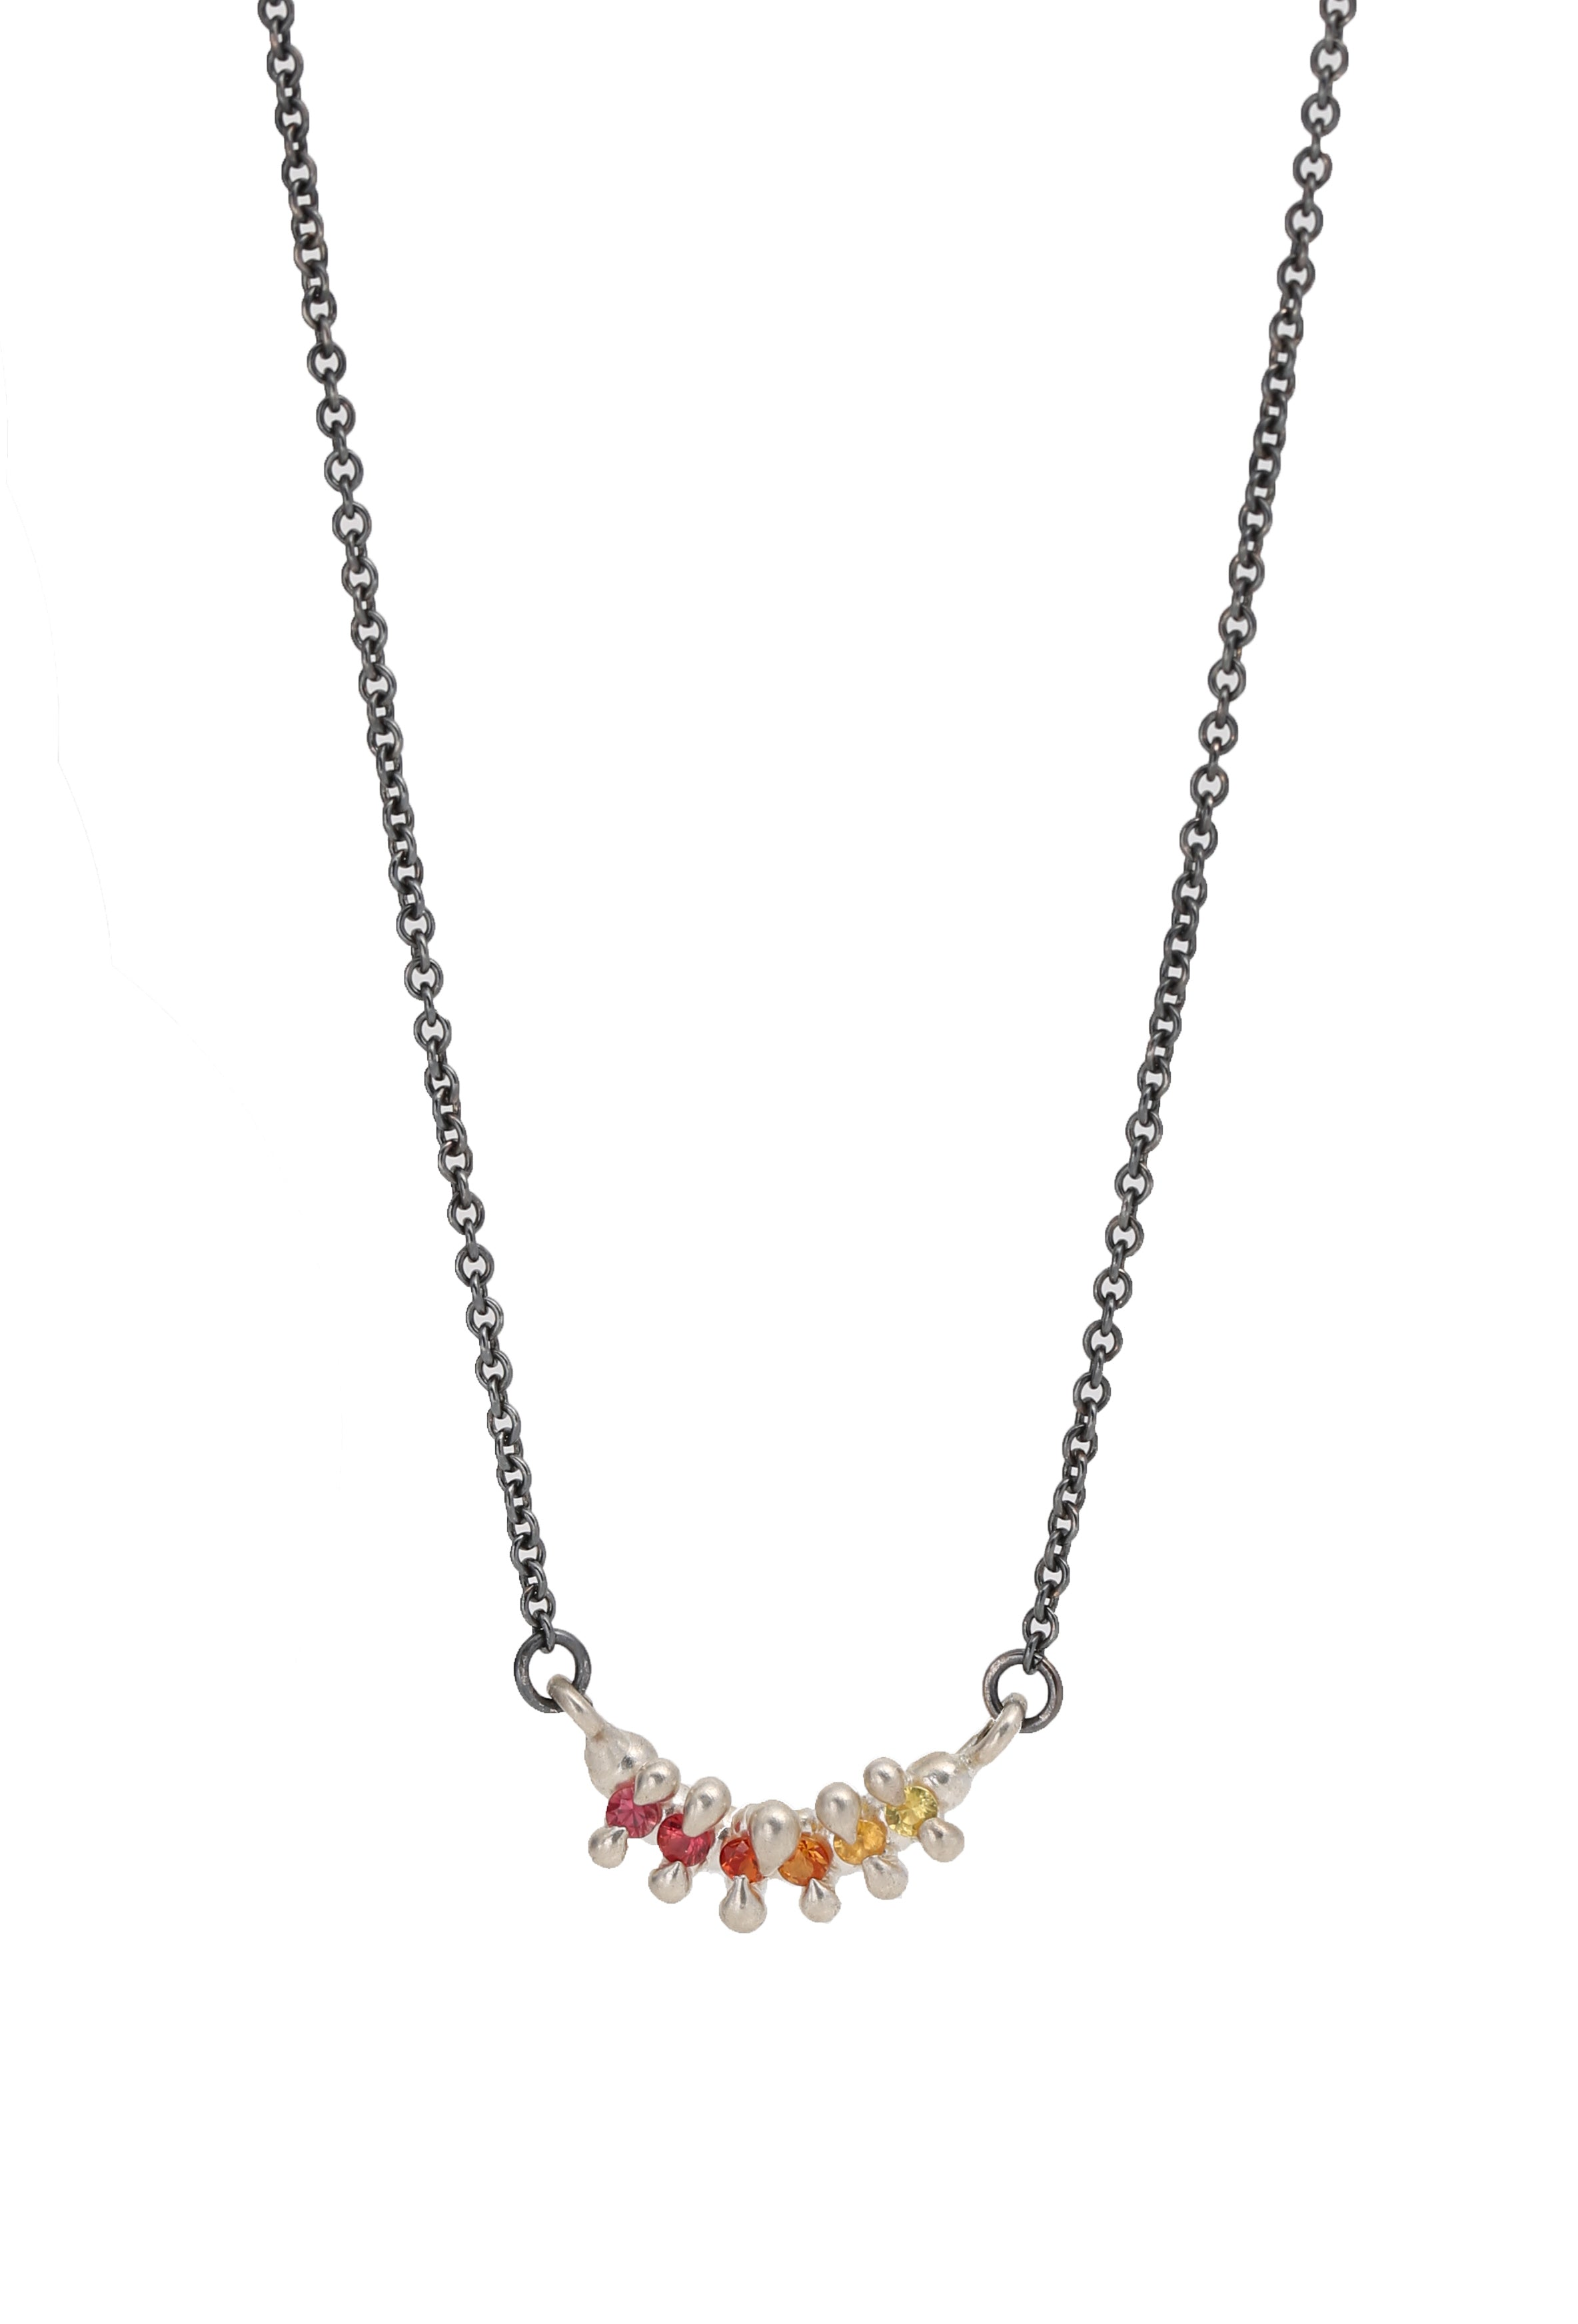 Limited Edition 6 Stone Bar Necklace Ombré Sapphires